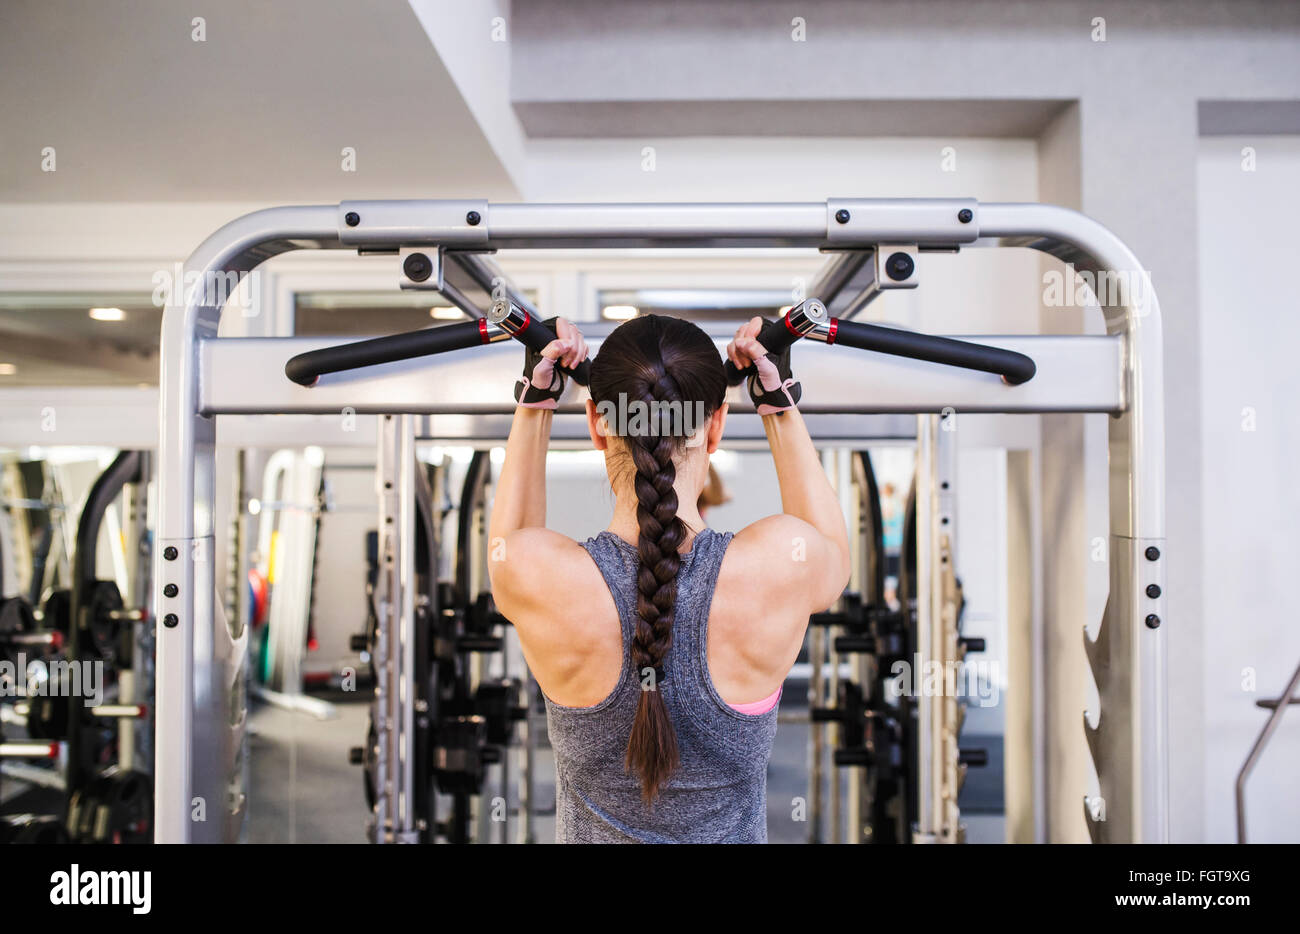 Woman in gym flexing back muscles on cable machine - Stock Image